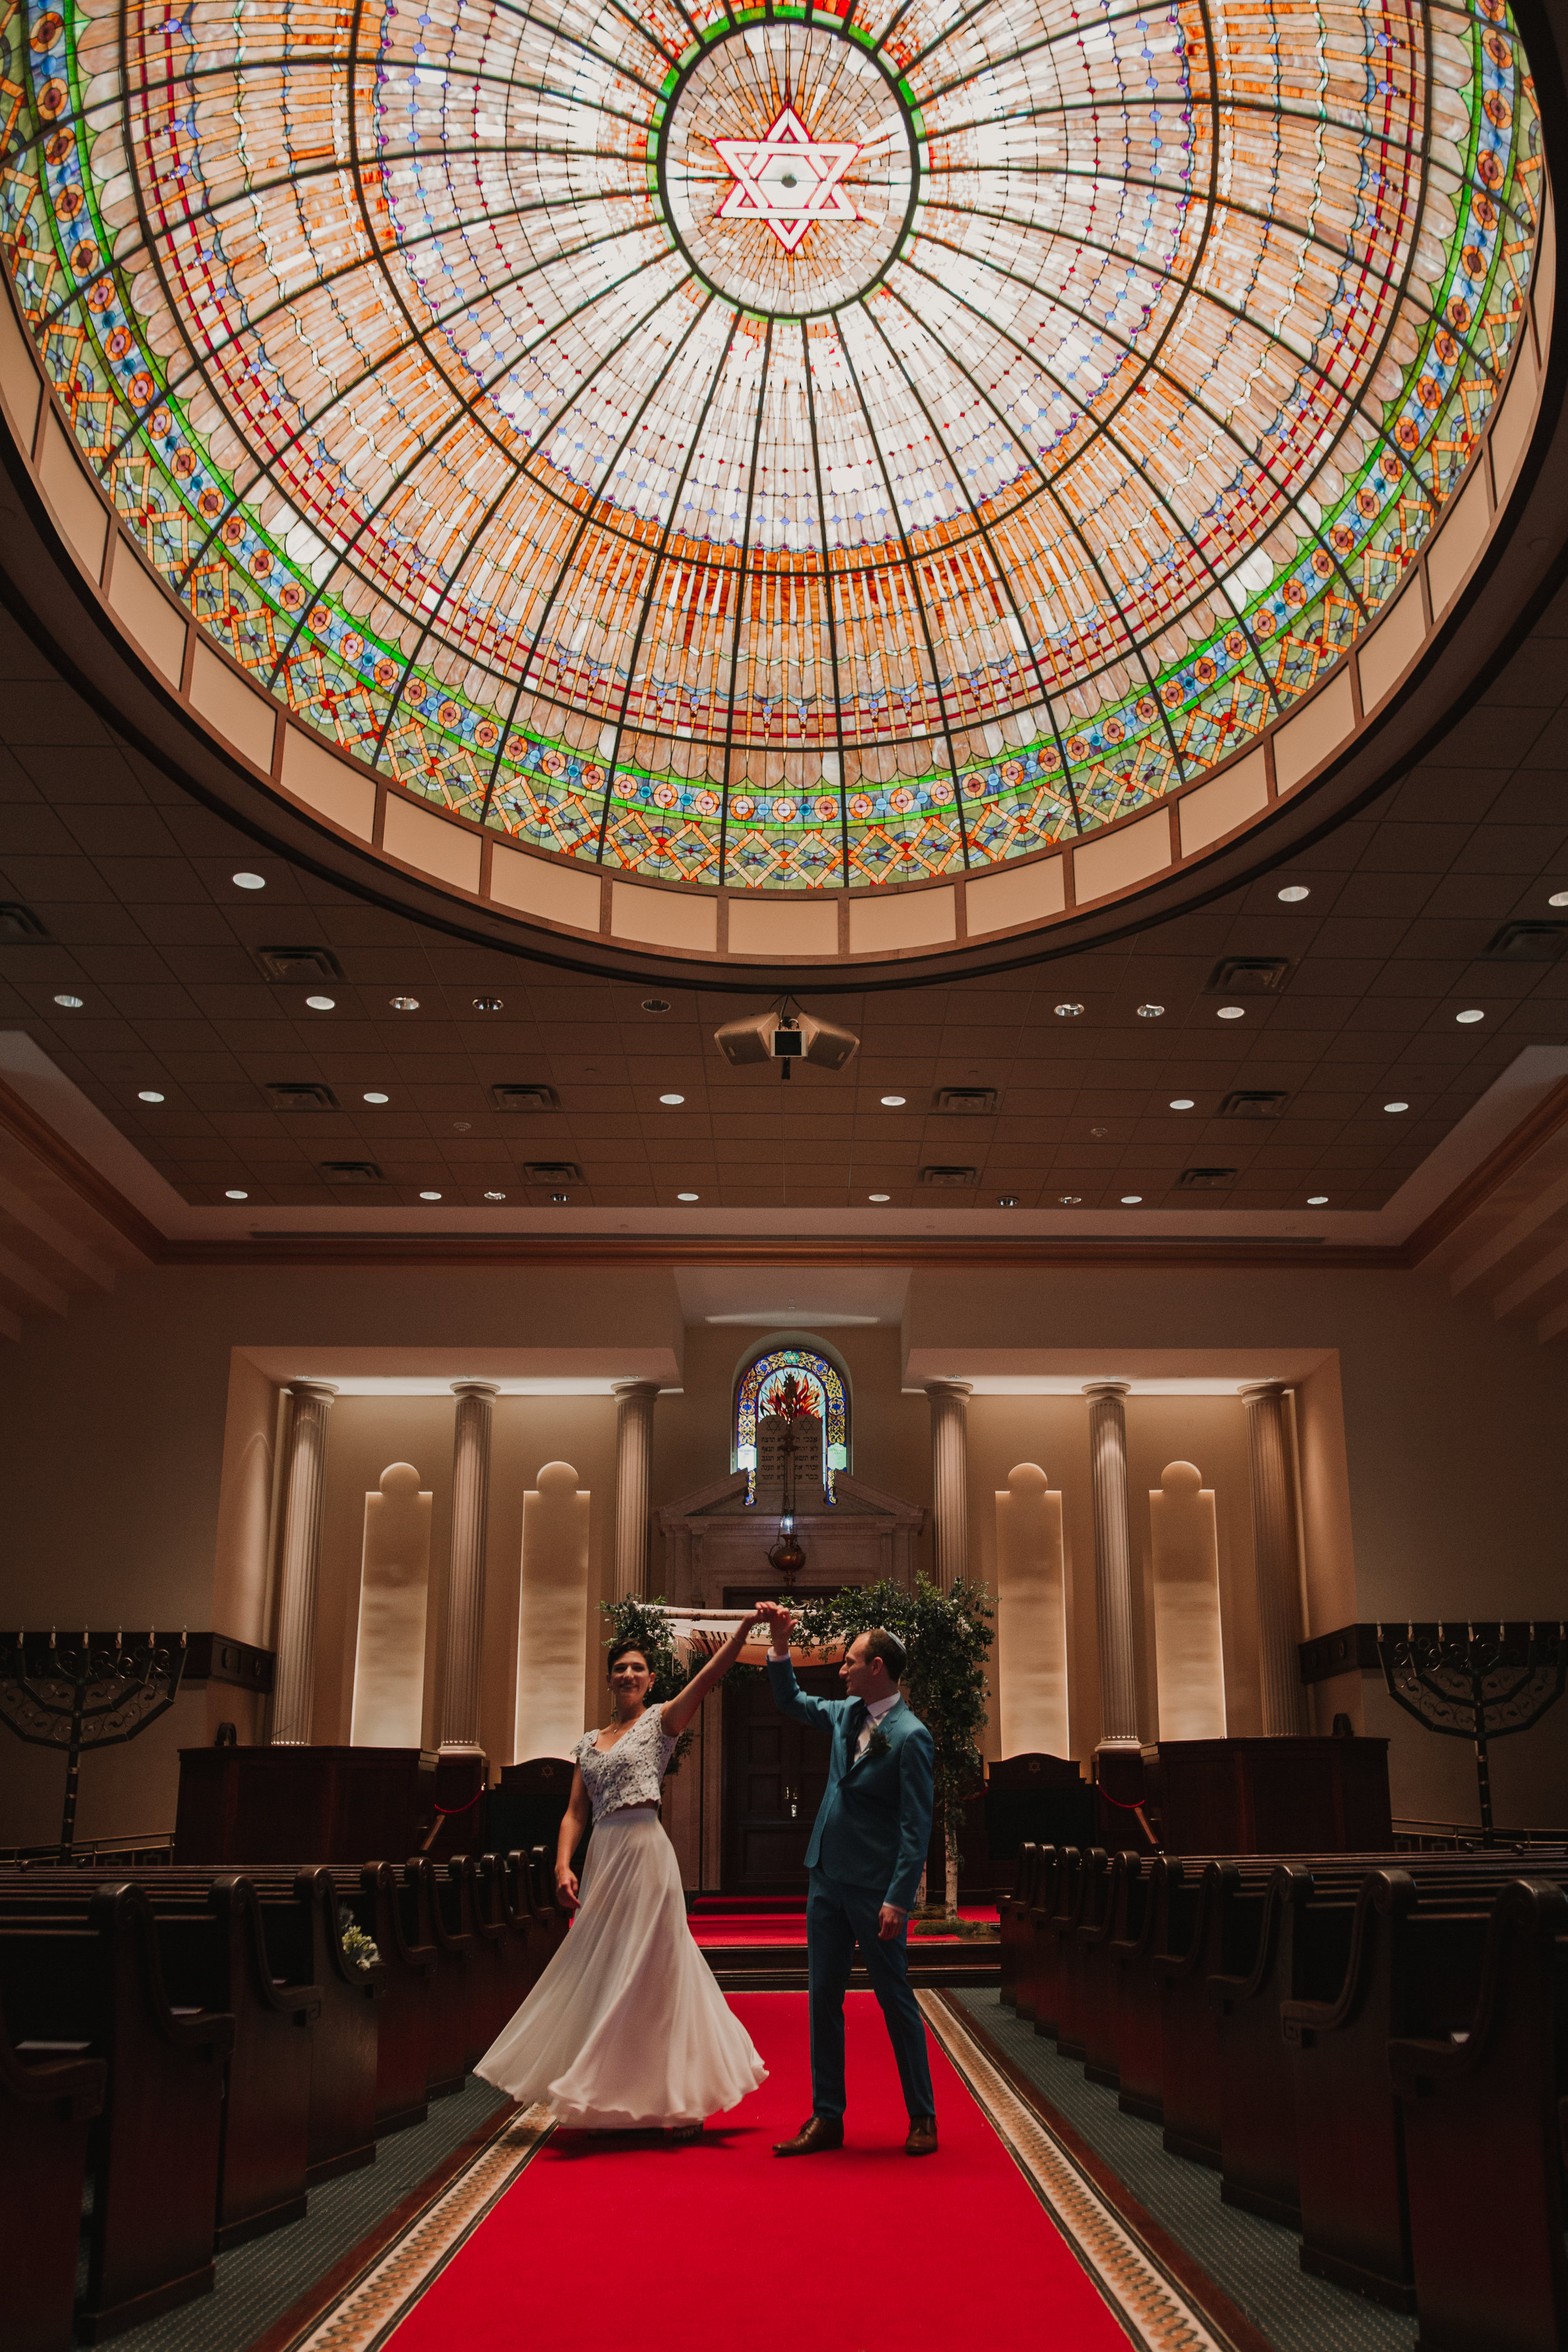 - Naomi & Elan resided in Pittsburgh when they got hitched, but chose to celebrate closer to both of their families at the Temple Emmanuel in Closter, NJ. The dome of the sanctuary was one of the most stunning details of their venue.